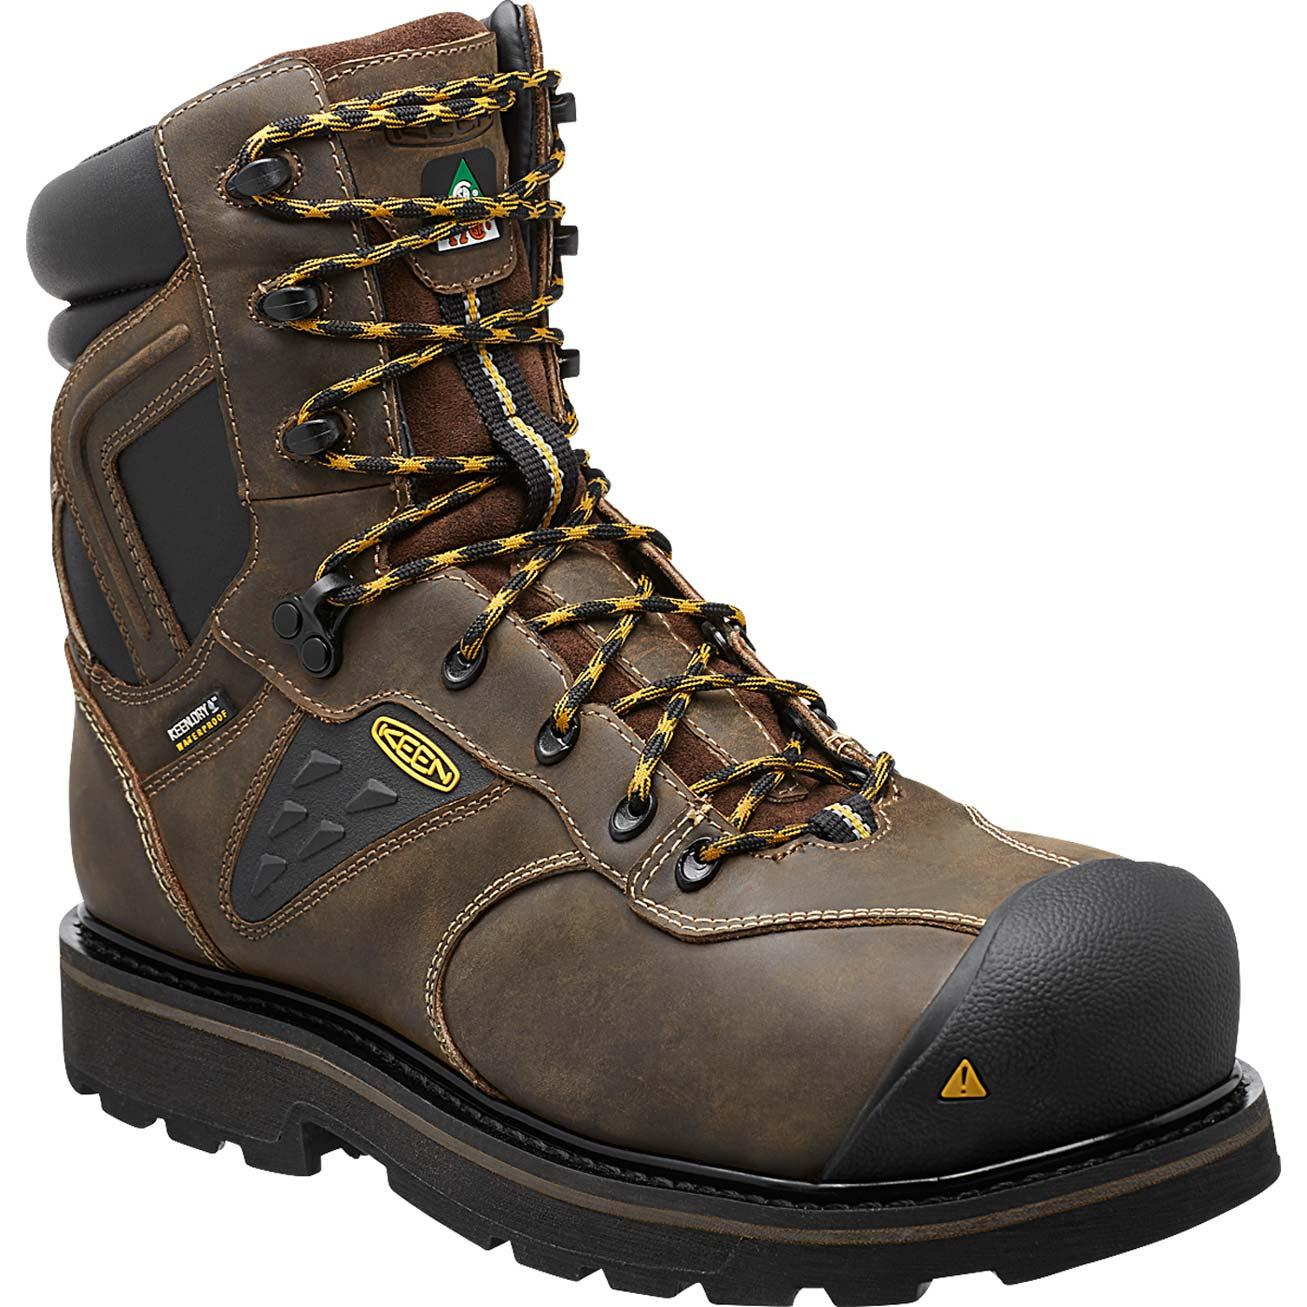 Keen Shoes For Men Tacoma